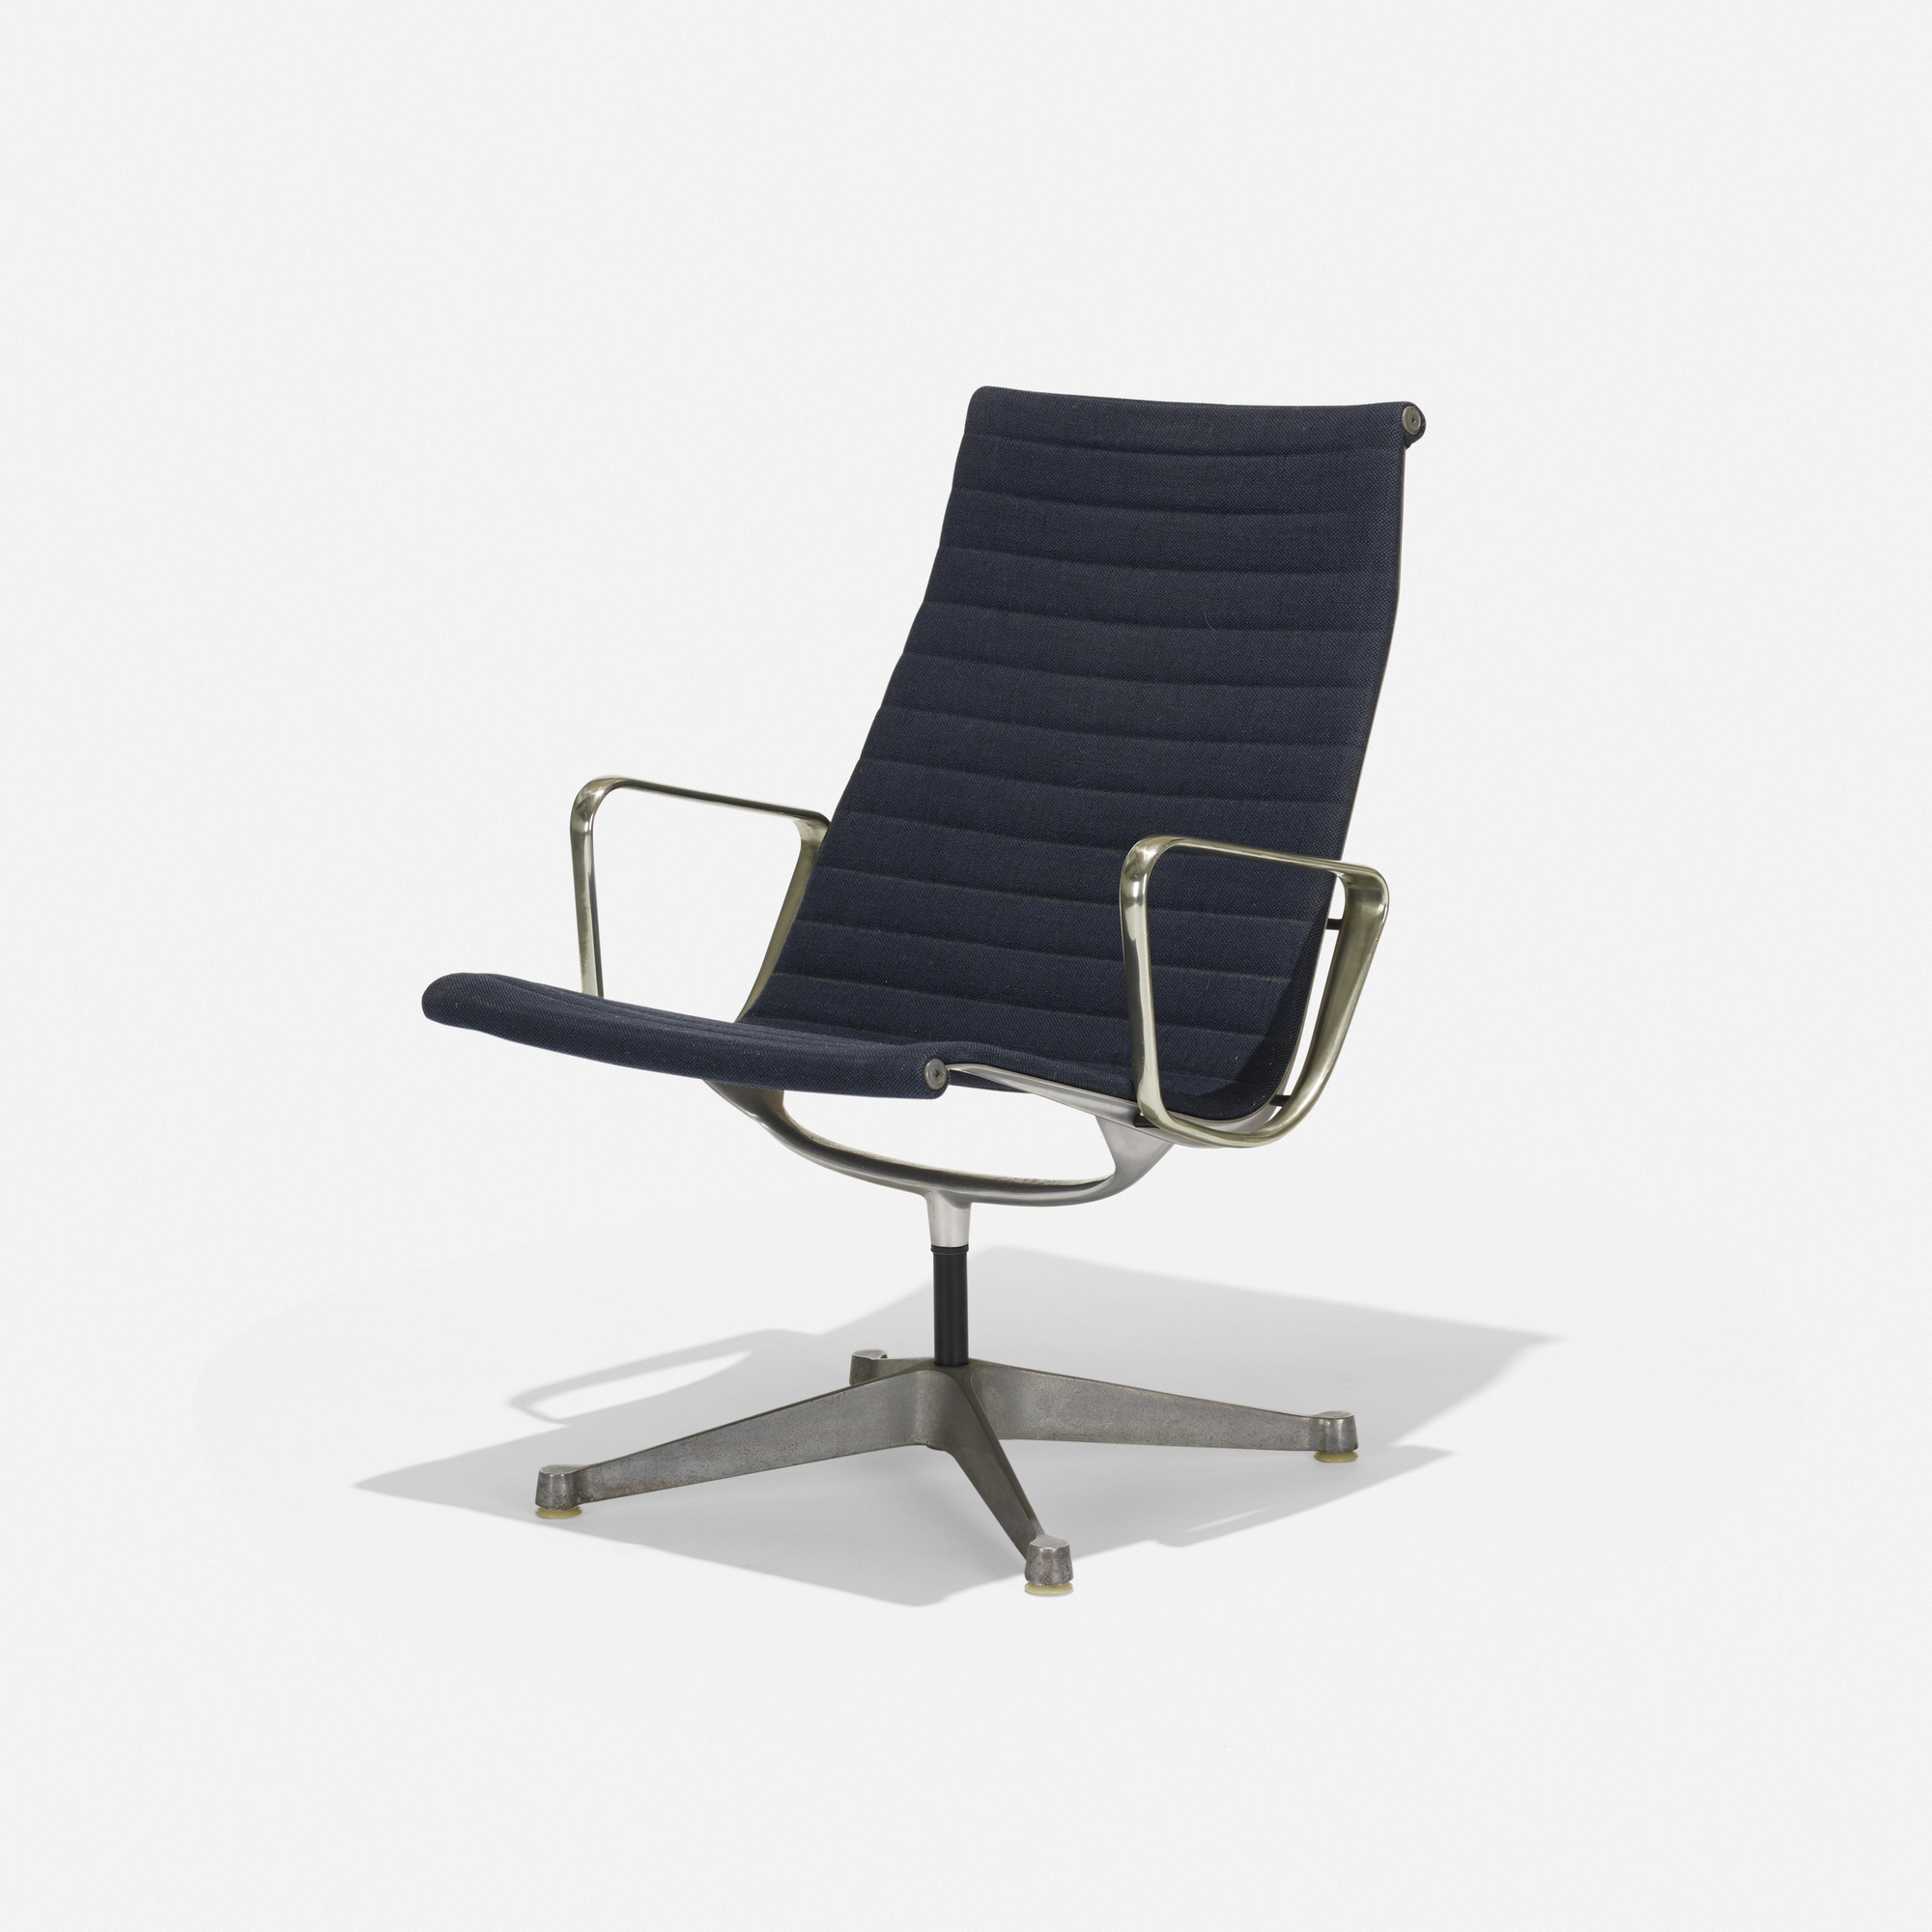 155: Charles And Ray Eames / Aluminum Group Lounge Chair (1 Of 3)